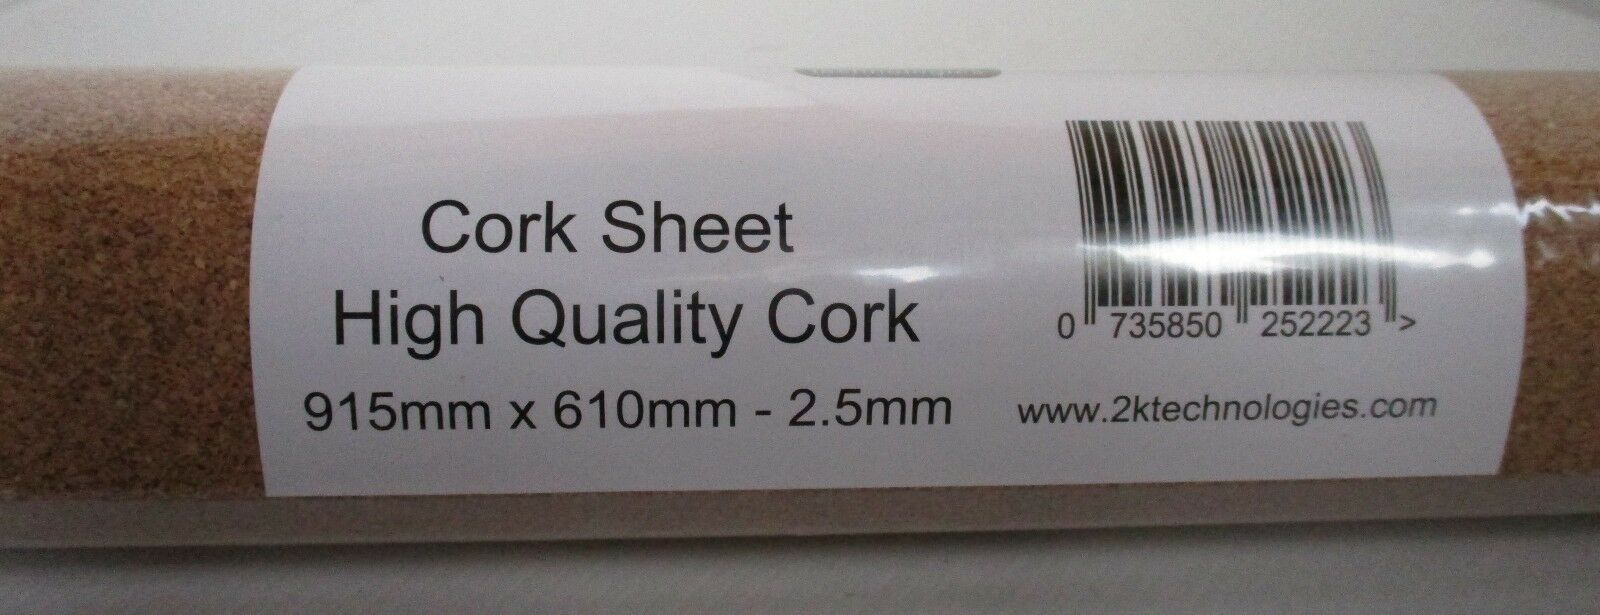 2KCork25L 6 x 2.5mm x 915mm x 610mm High Quality Cork Sheet Roll Basetavola Bed